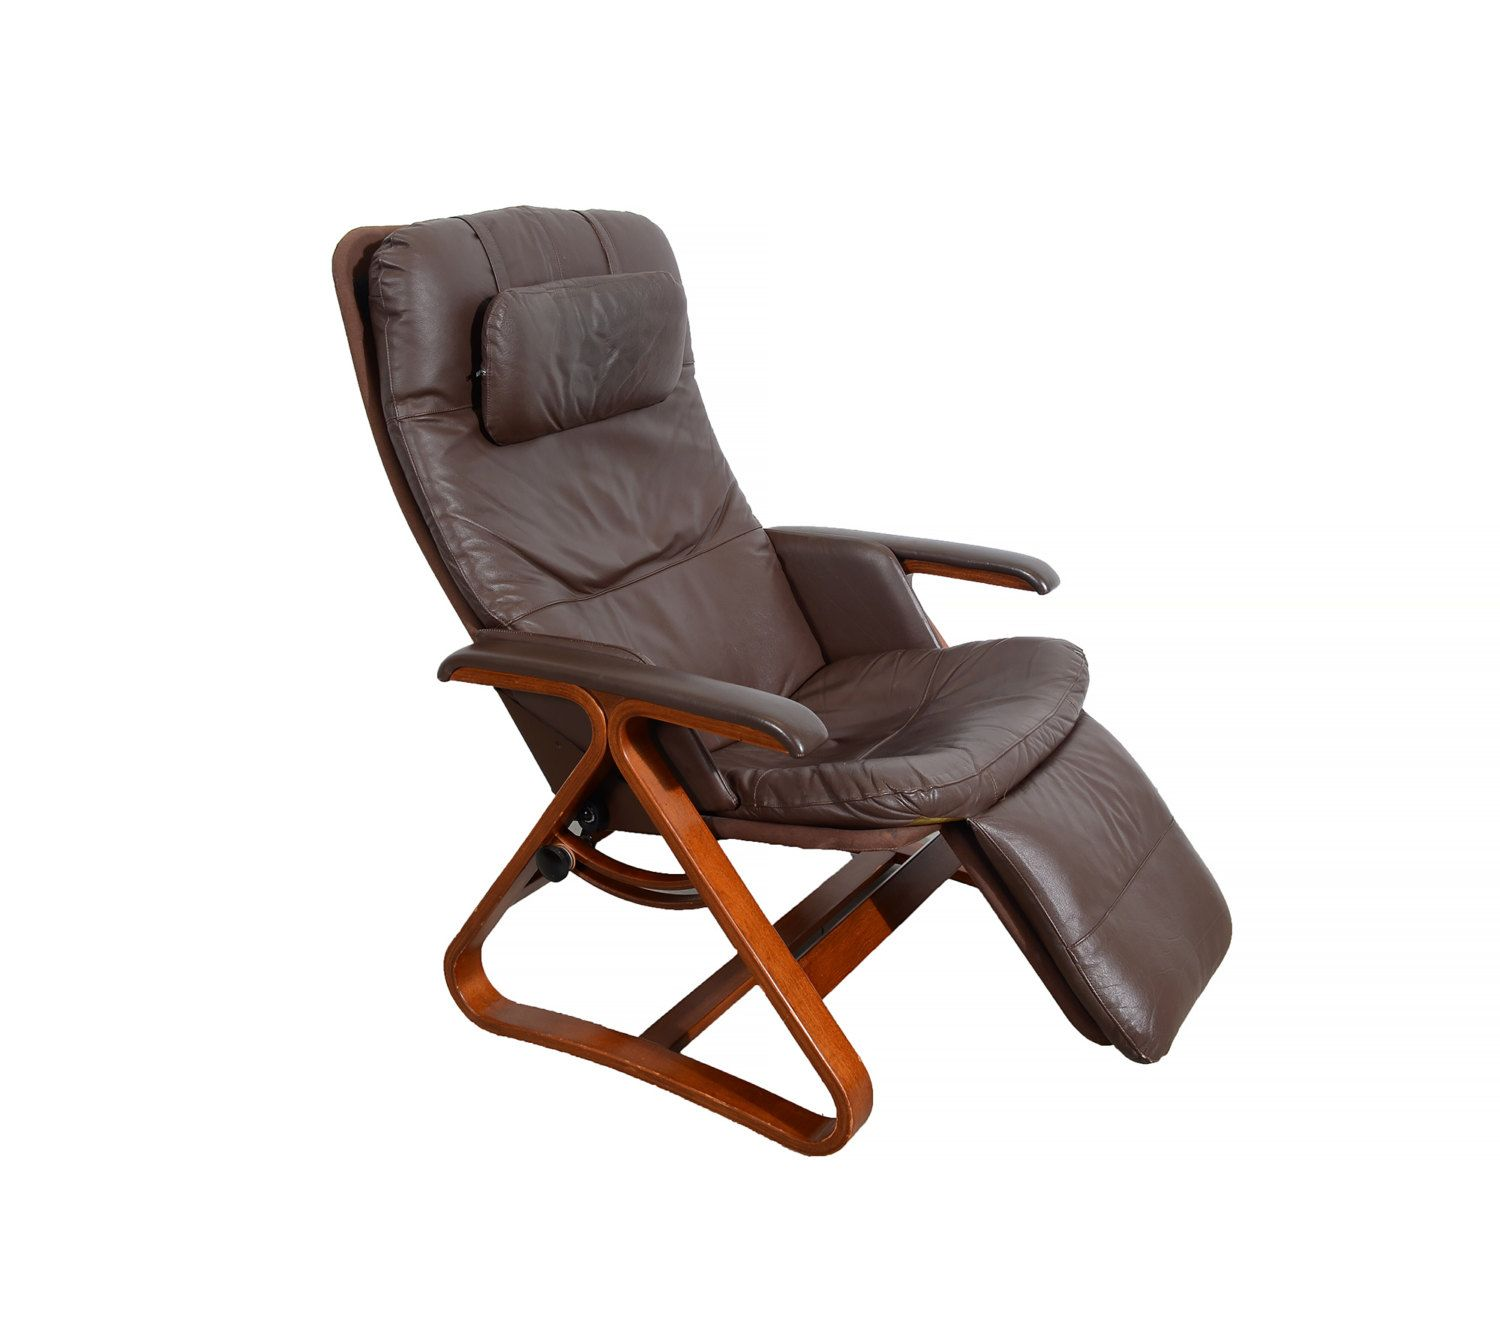 Leather lounge chair backsaver zero gravity chair danish for Modern leather club chair